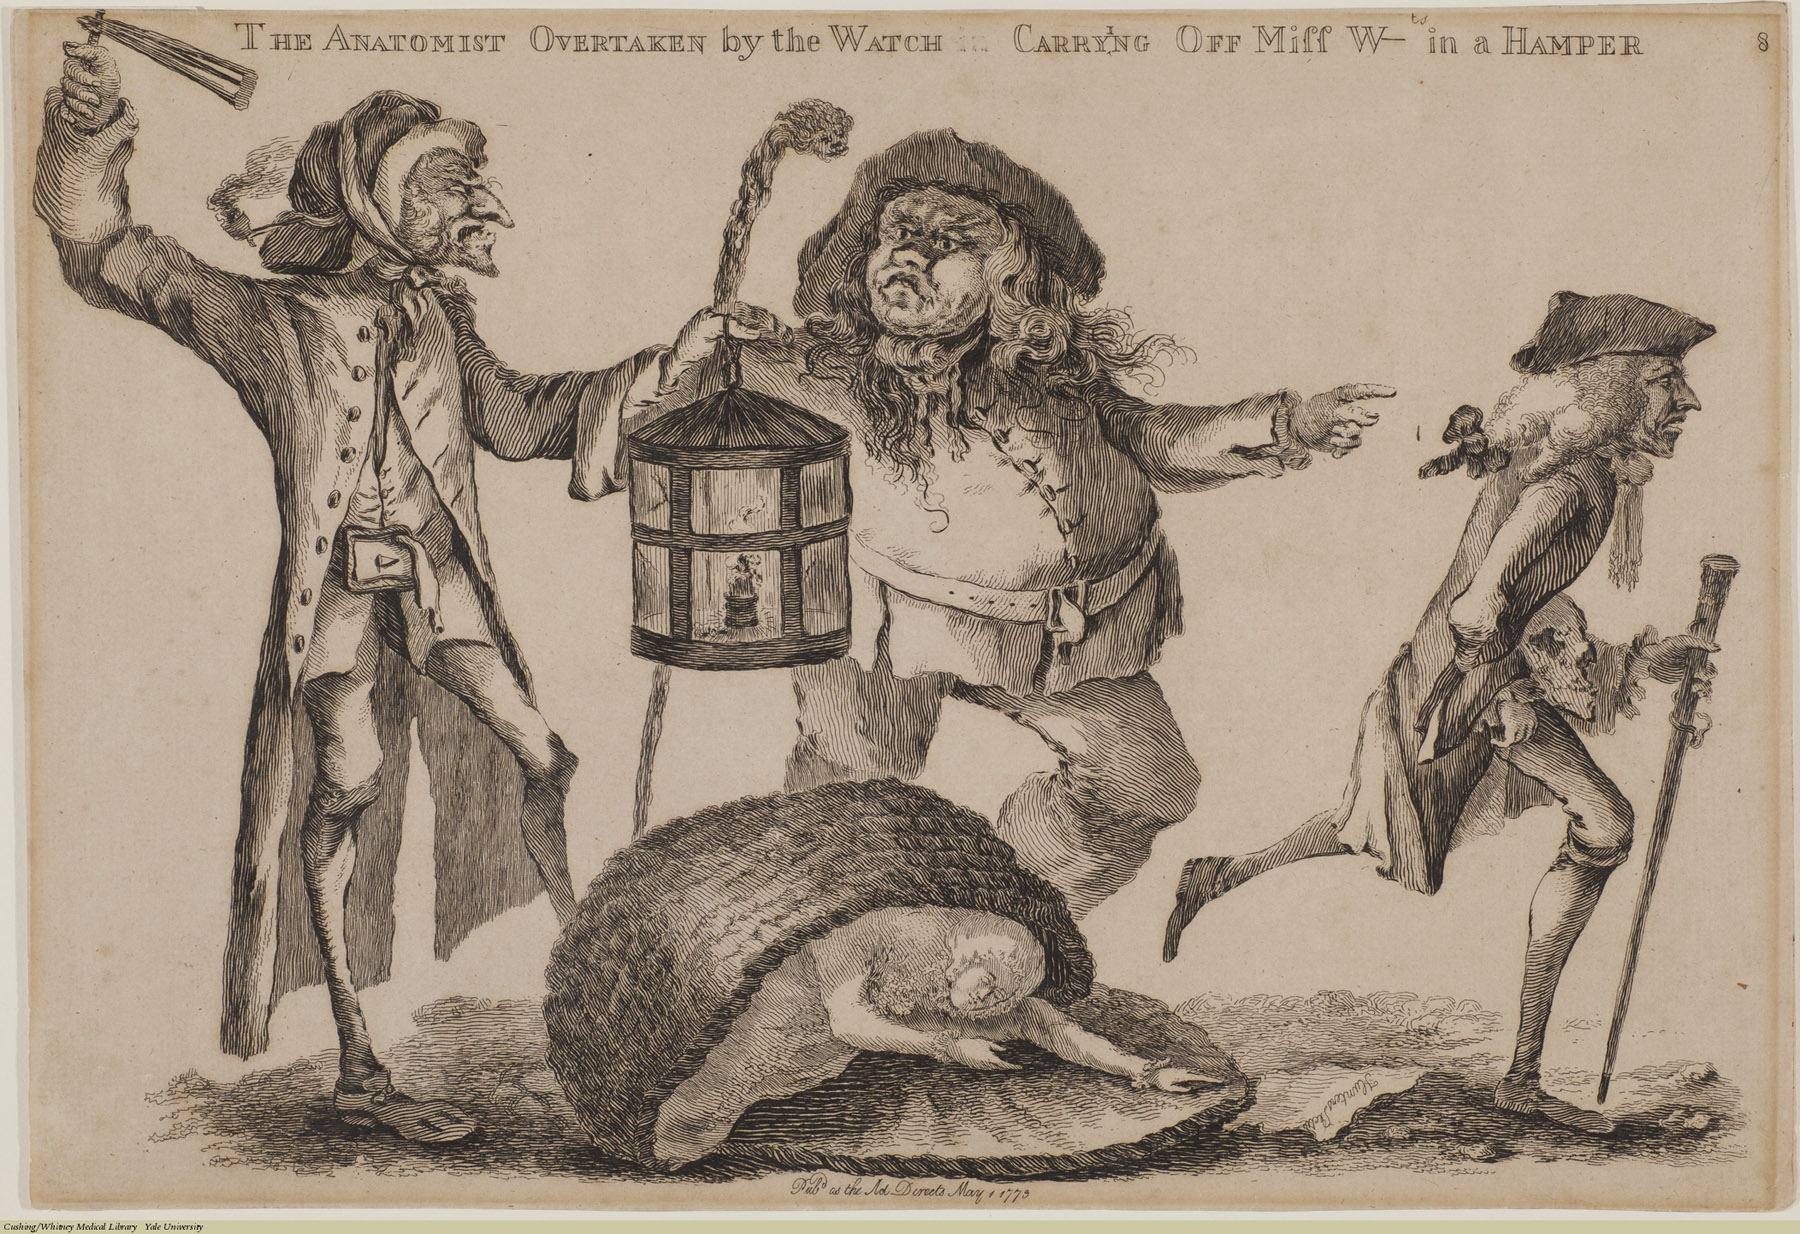 The Anatomist Overtaken by the Watch in Carring Off Miss W- in a Hamper. William Austin, Etching, 1773. Subject: Graverobbing, William Hunter.